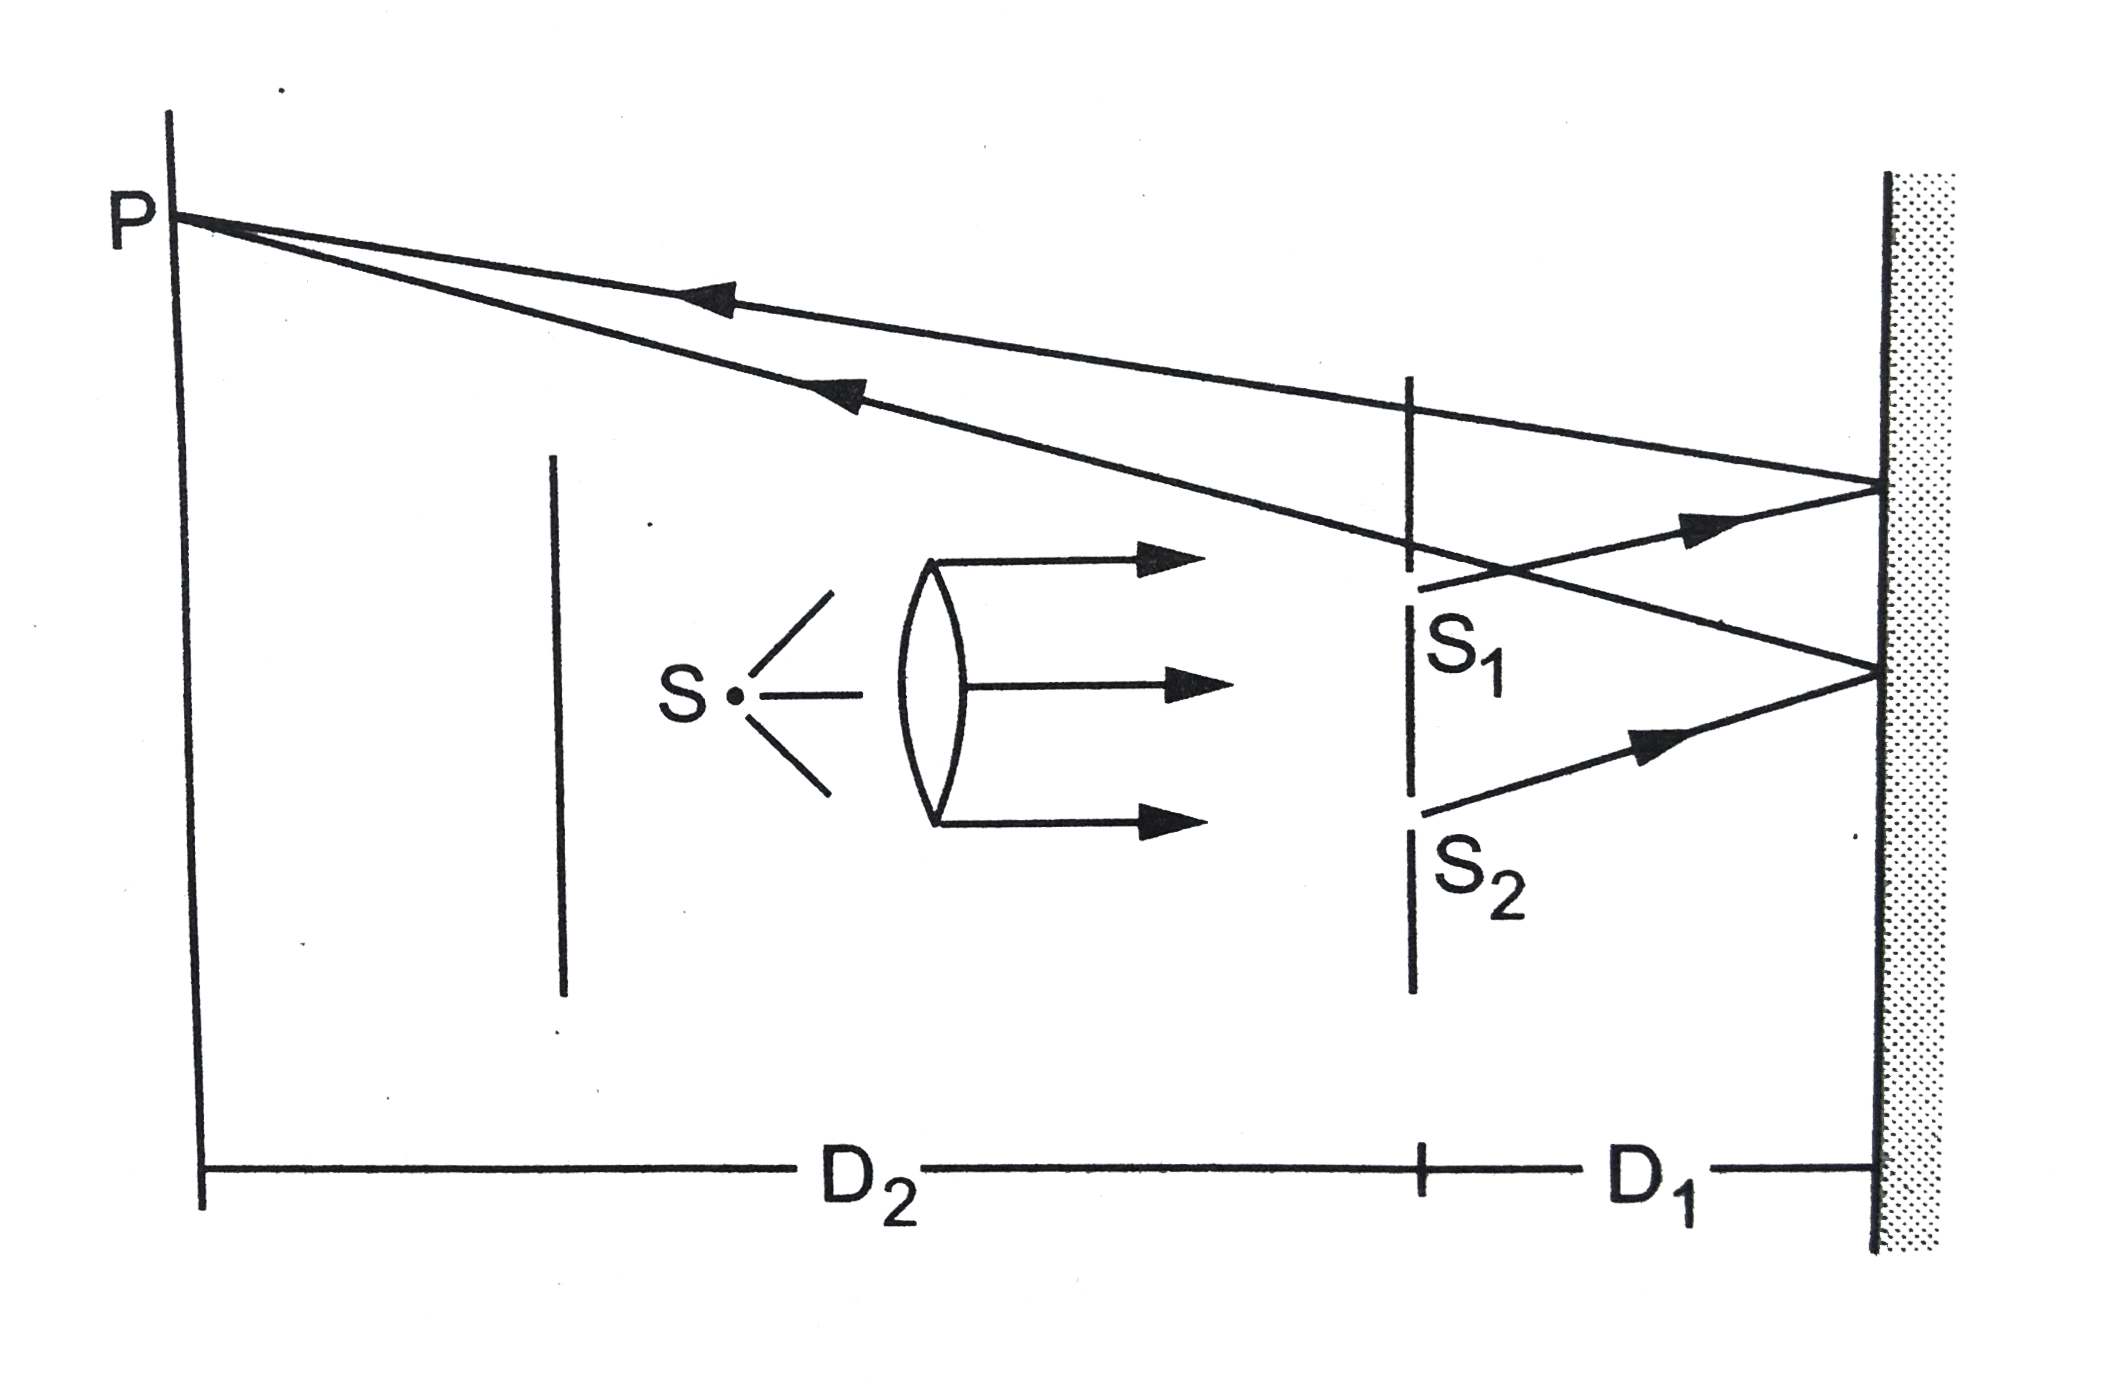 a double slit s1-s-2 is illuminated by a coherent light of wavelength �   the slits are separated by a distance d  a plane mirror is placed in front